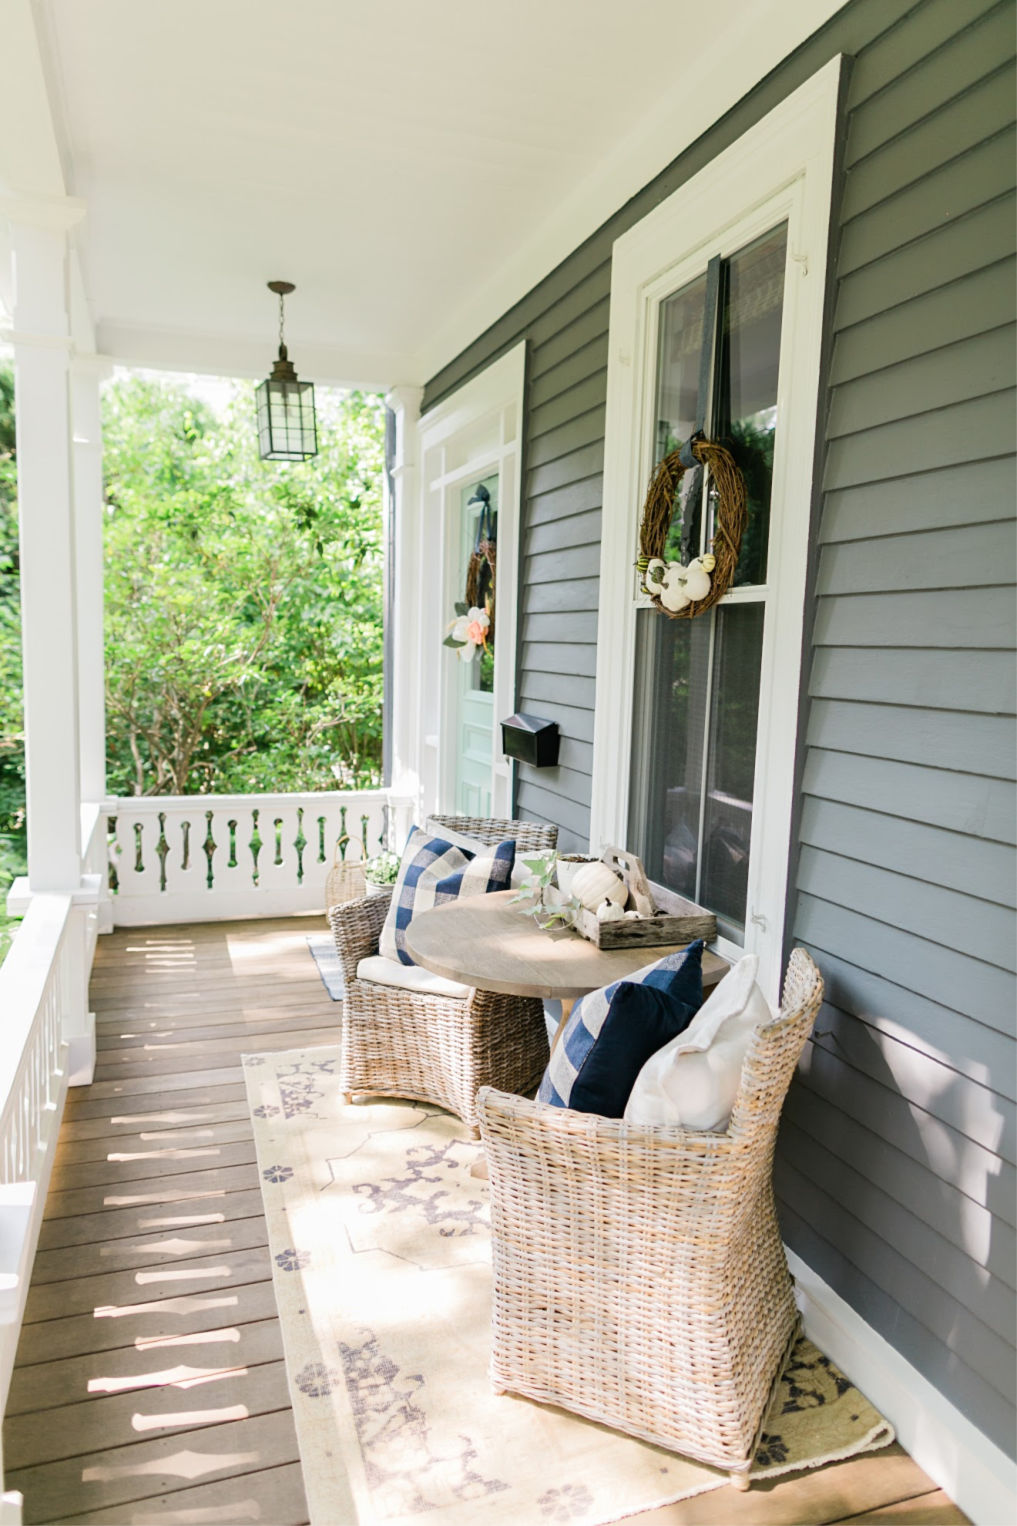 Charming front porch with beautiful cutout railing kellyelko.com #porch #frontporch #oldhome